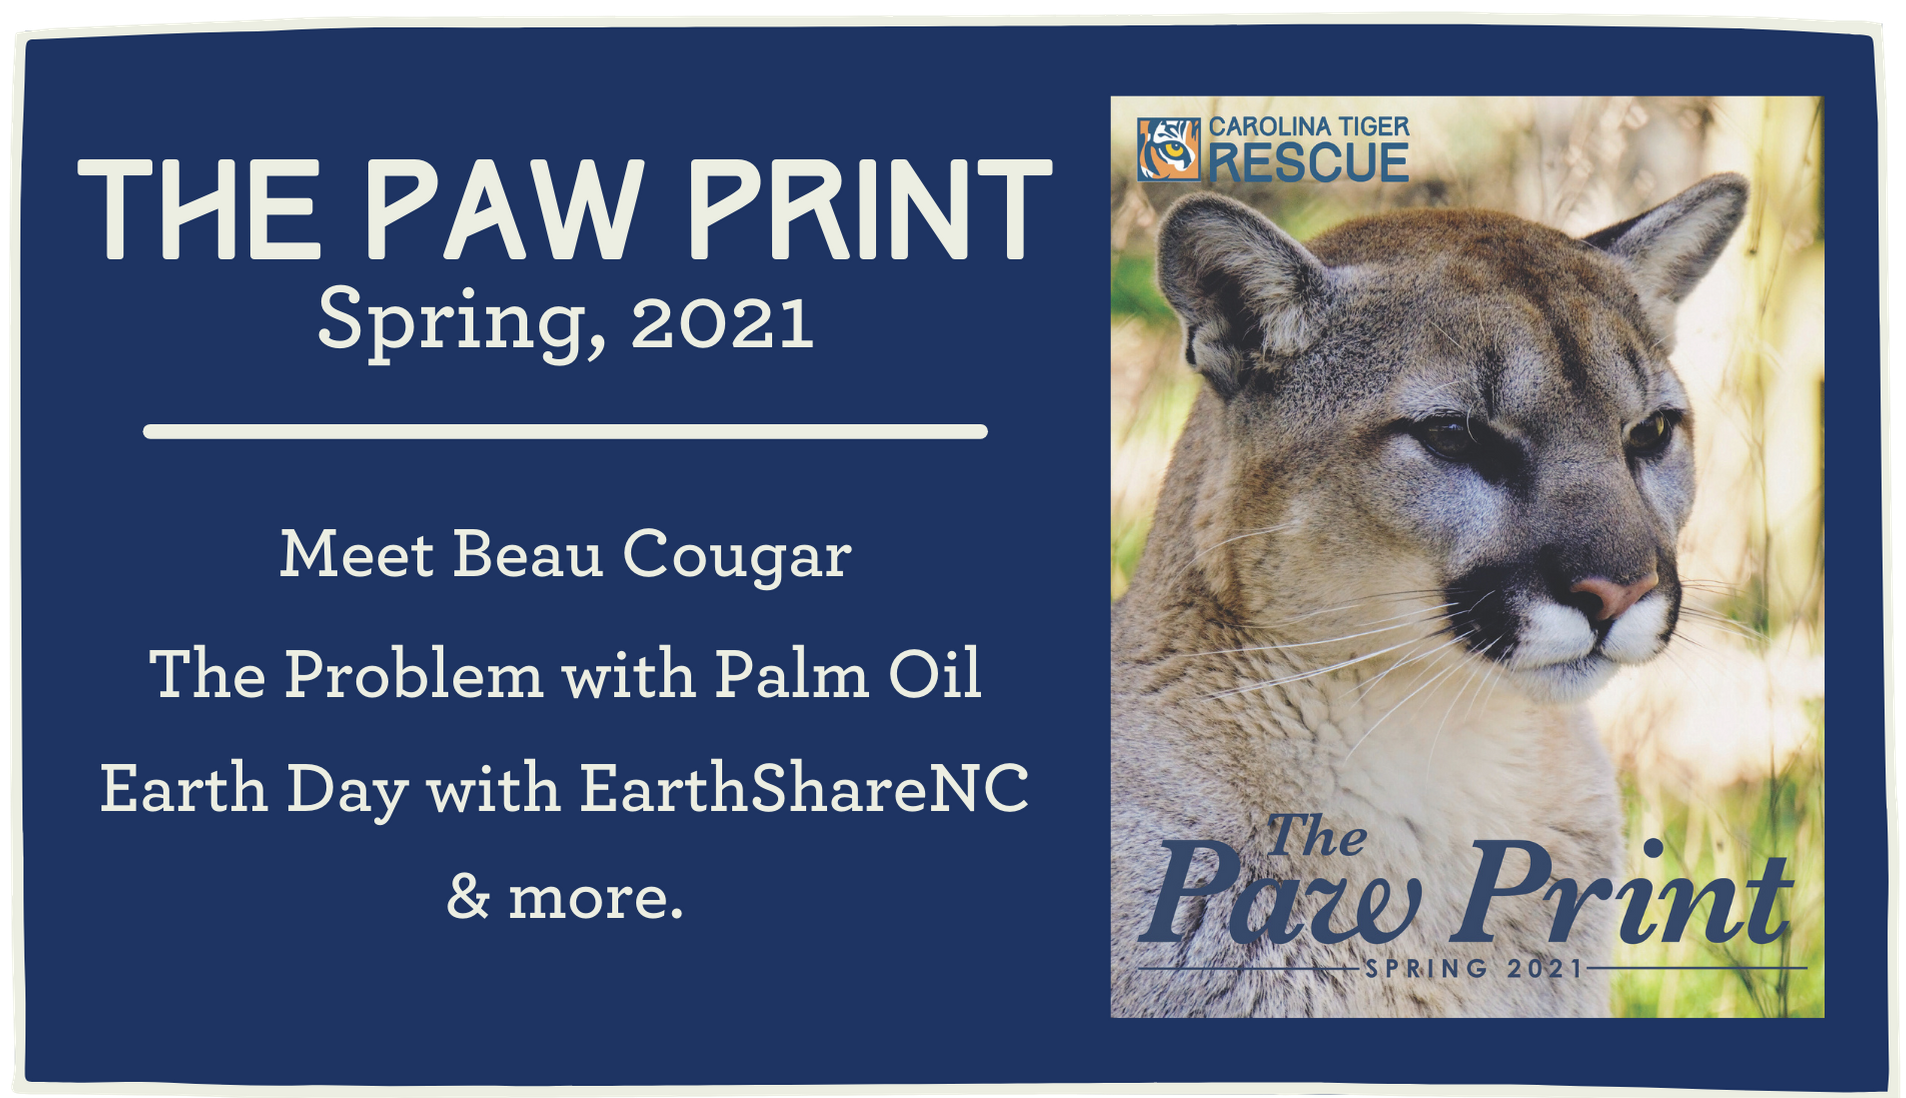 Meet Beau, learn about Palm Oil and Earth Day in the Spring 2021 Paw Print